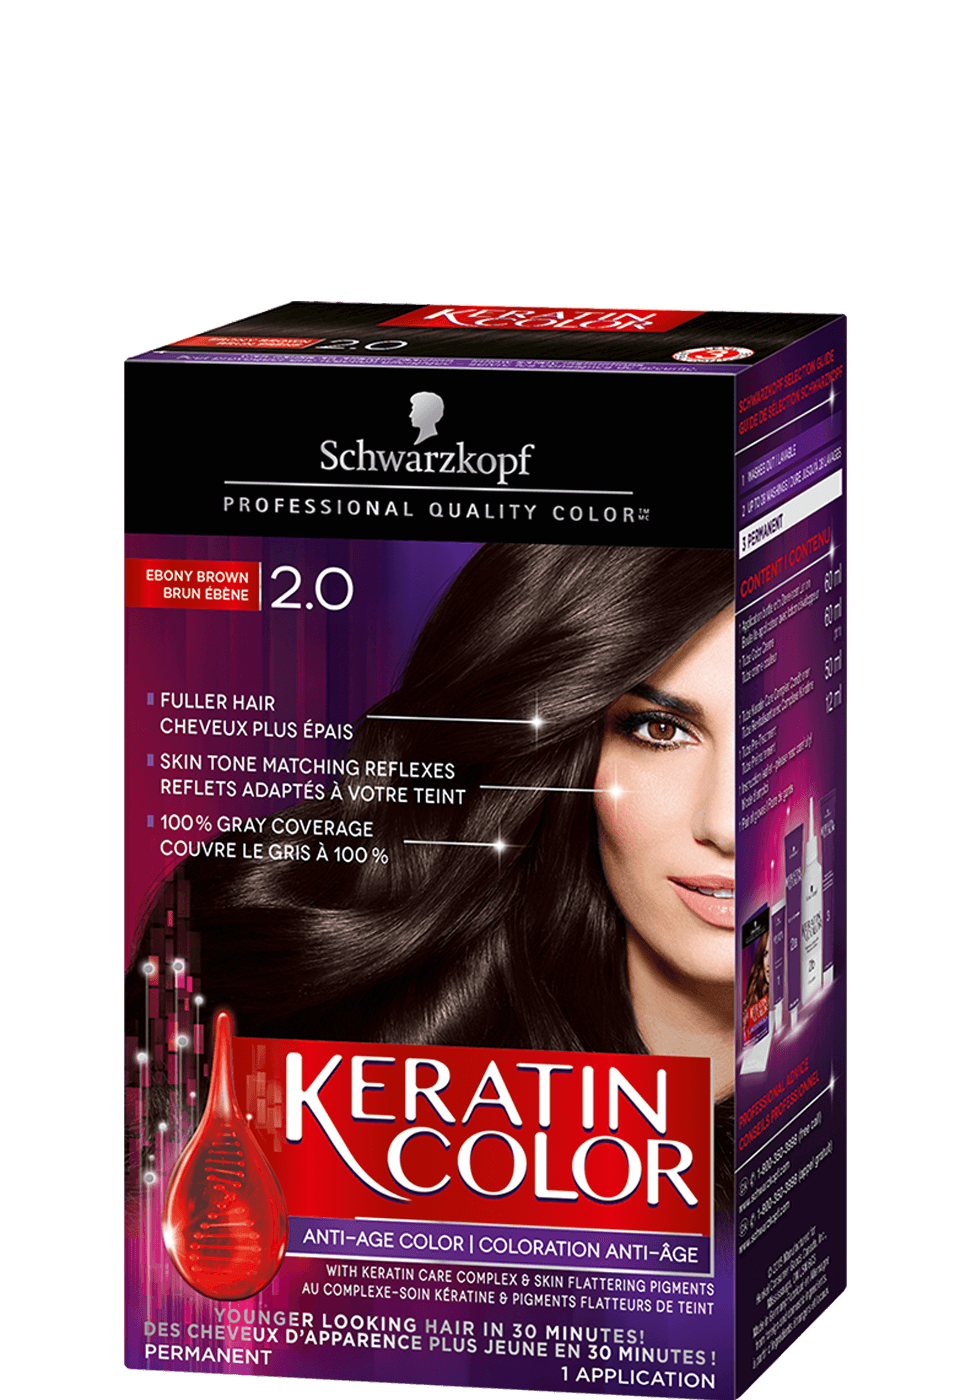 Keratin_Color_en_2_0_970x1400